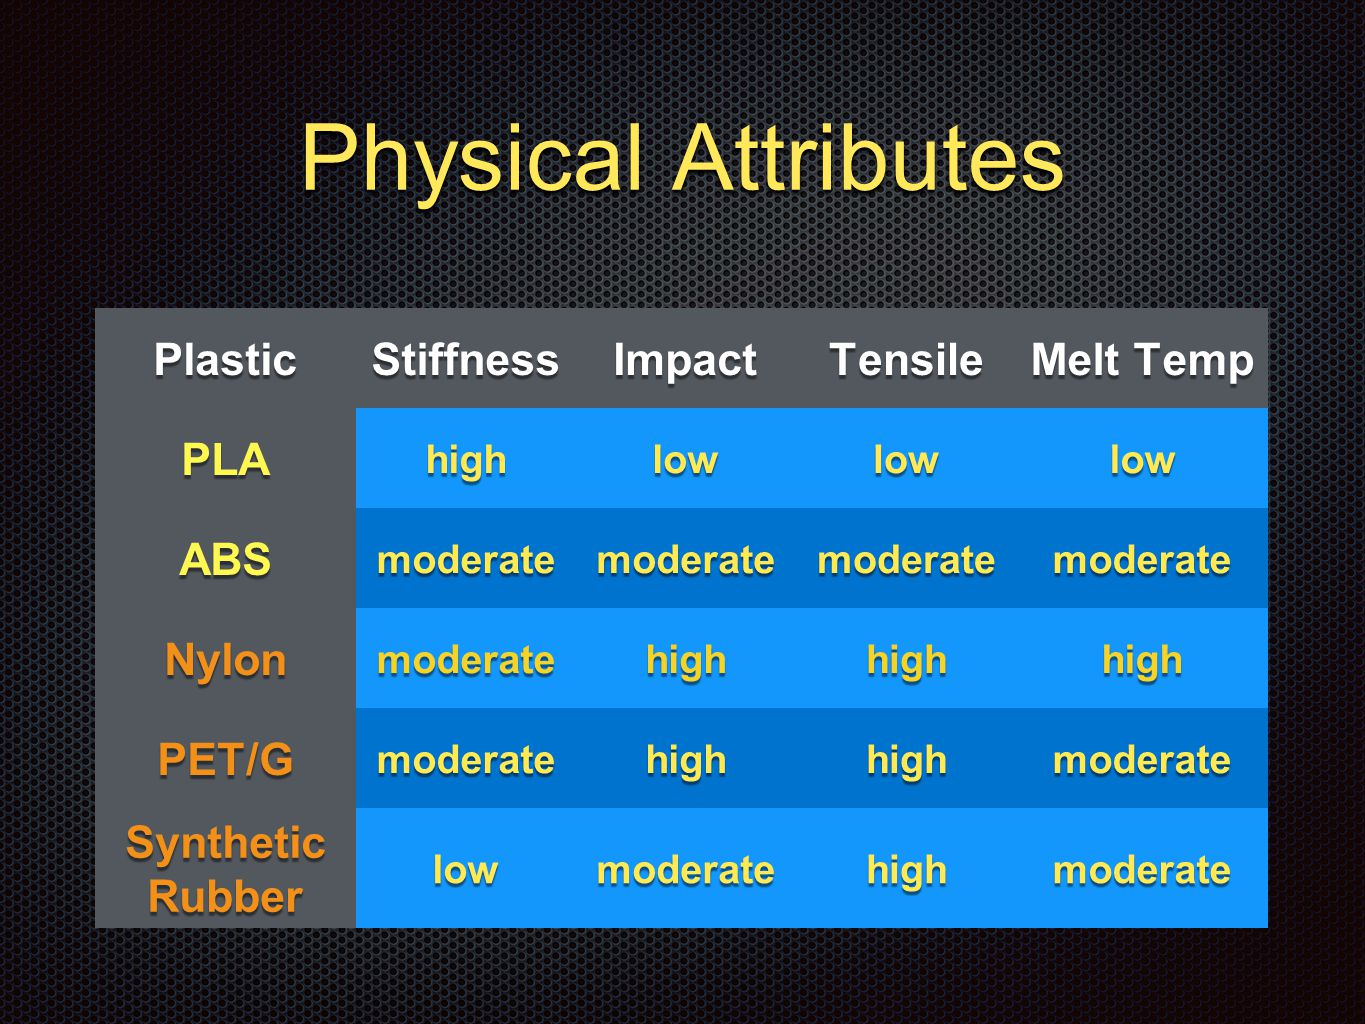 Physical Attributes PlasticStiffnessImpactTensile Melt Temp PLAhighlowlowlow ABSmoderatemoderatemoderatemoderate Nylonmoderatehighhighhigh PET/Gmoderatehighhighmoderate Synthetic Rubber lowmoderatehighmoderate